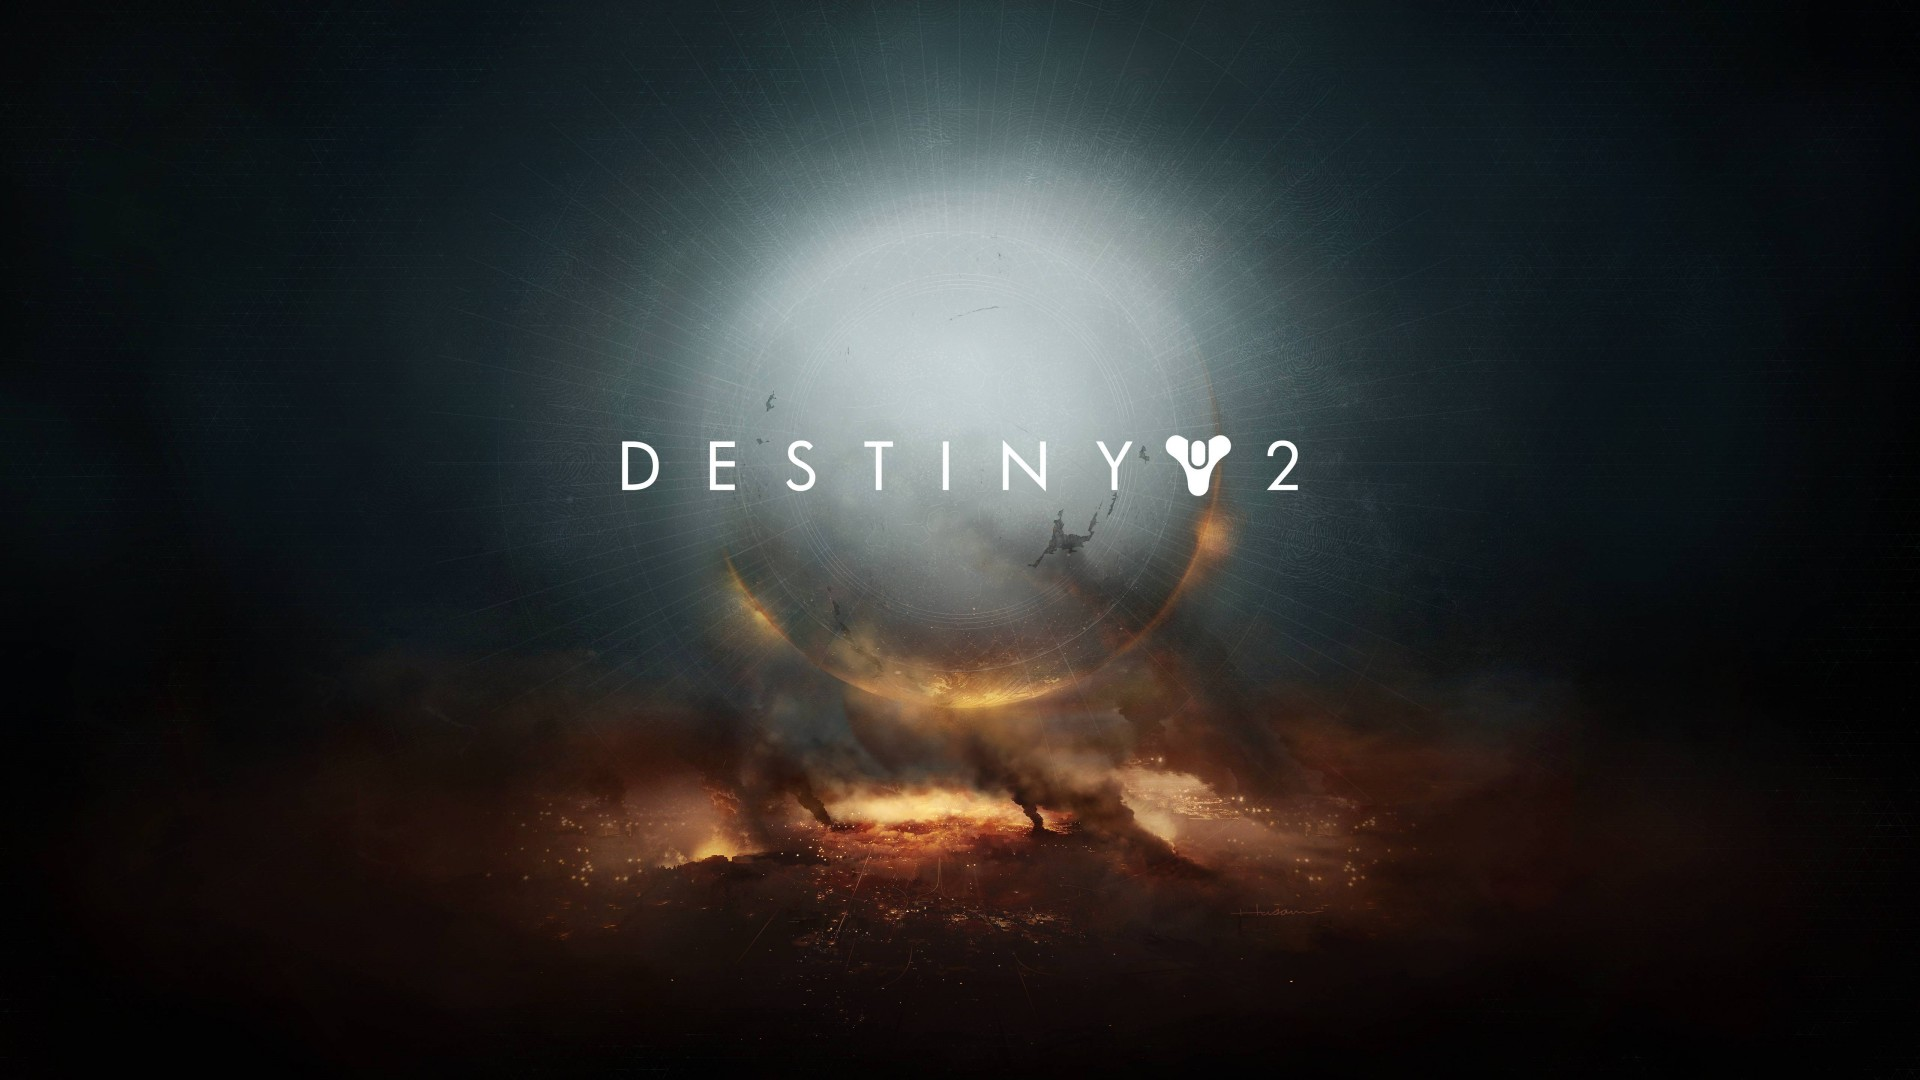 destiny 2 wallpapers pictures images